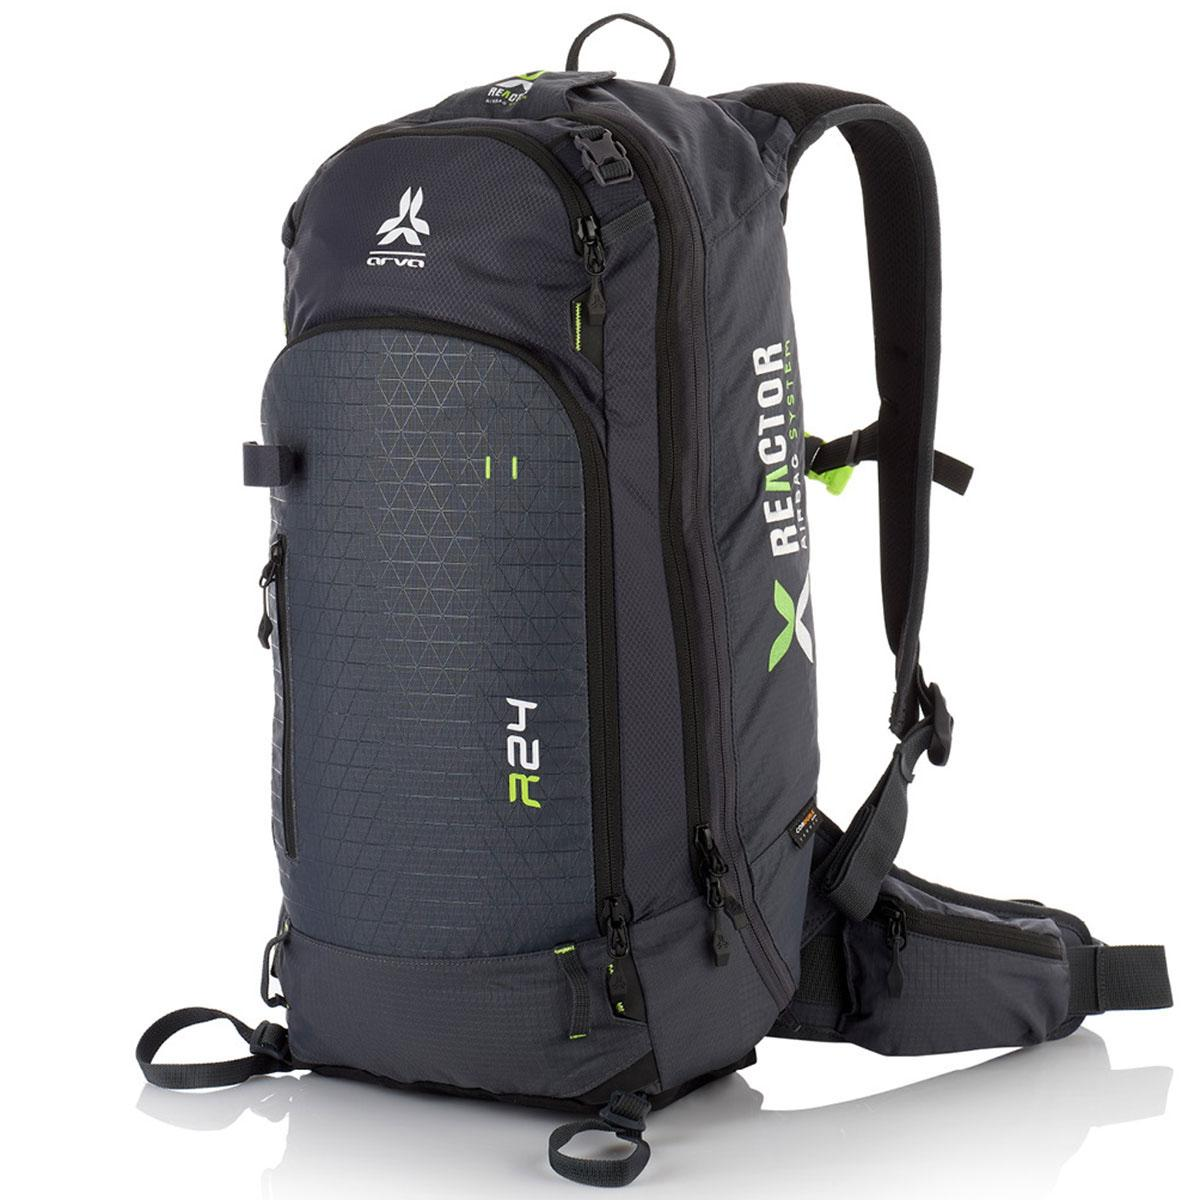 Arva Reactor 24 Airbag Backpack in Grey and Blue